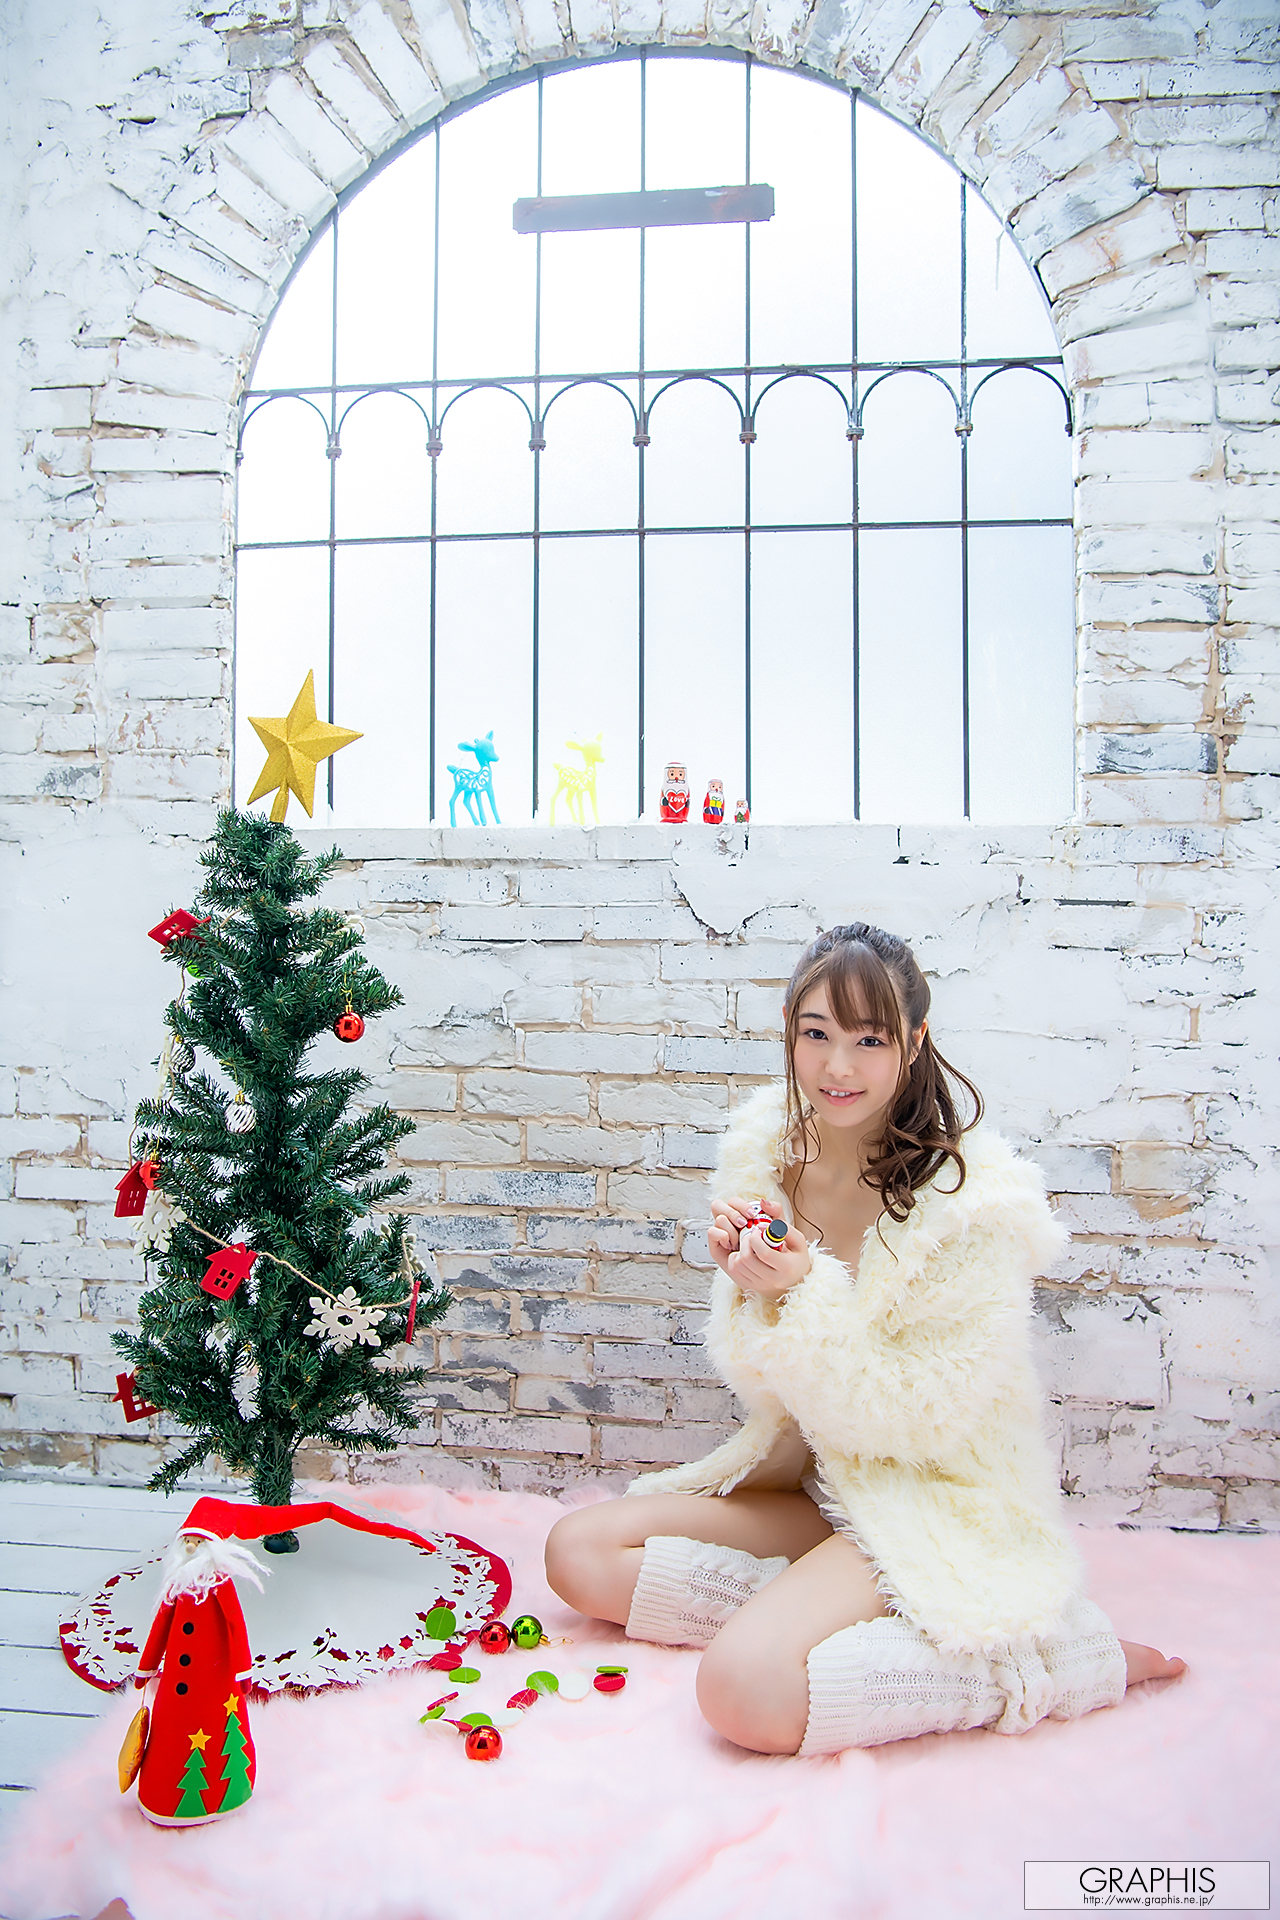 Xmas Special 2019 新名あみん - 貼圖 - 清涼寫真 -